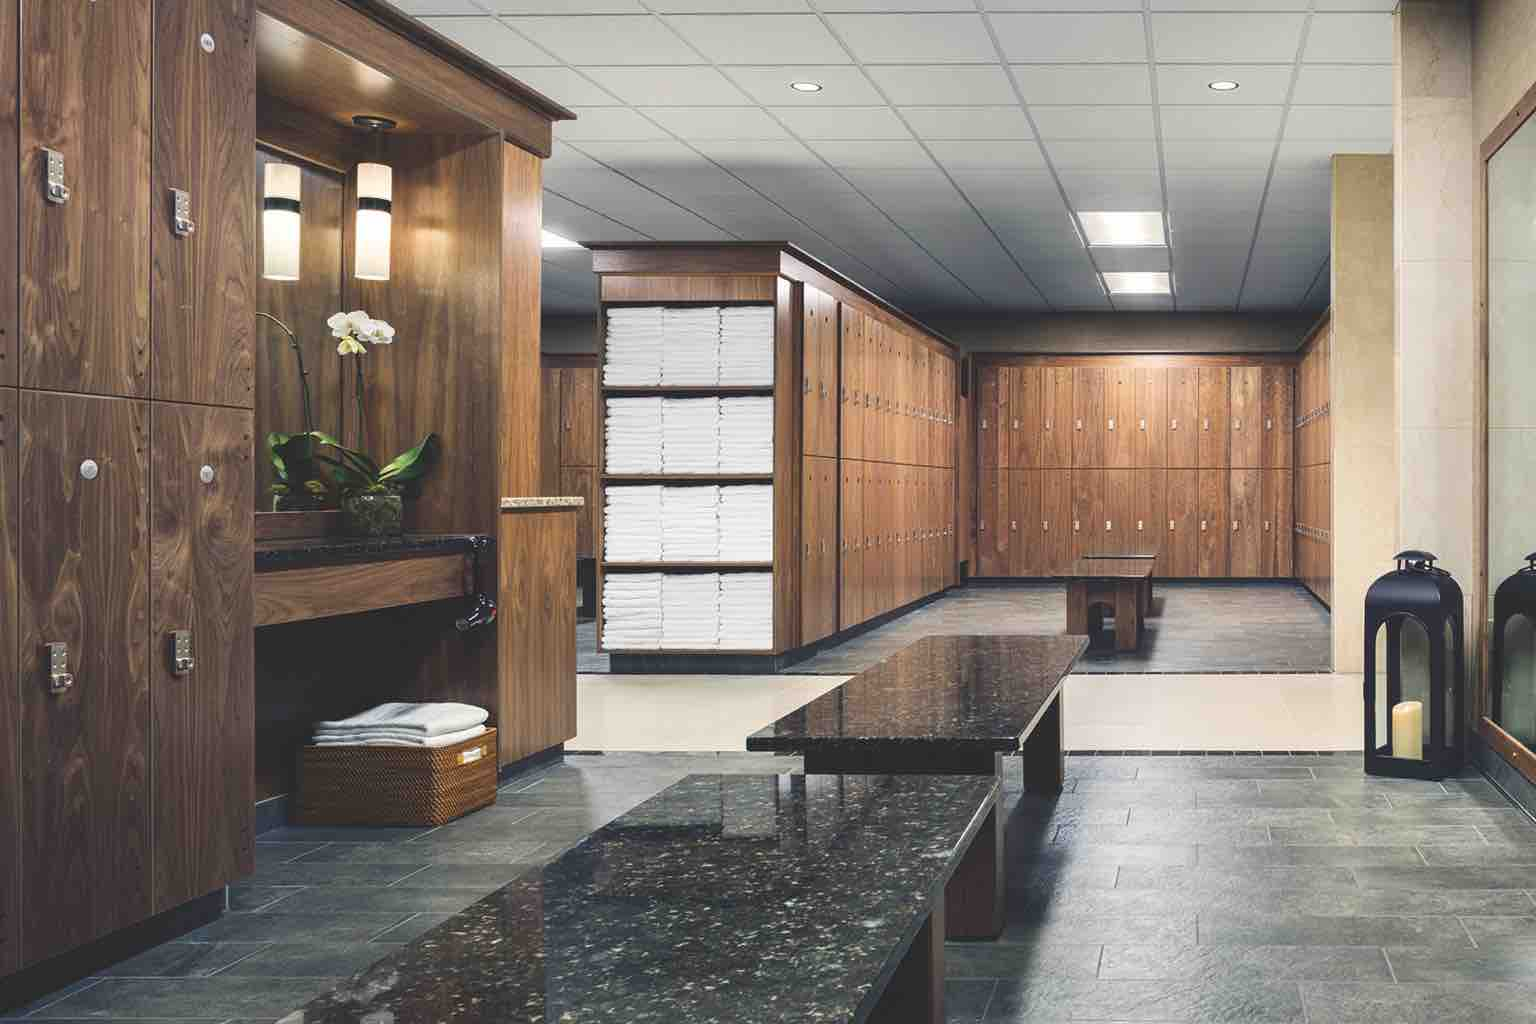 A luxurious locker room with rows of wooden lockers, a vanity area, benches and open shelving with stacks of white towels